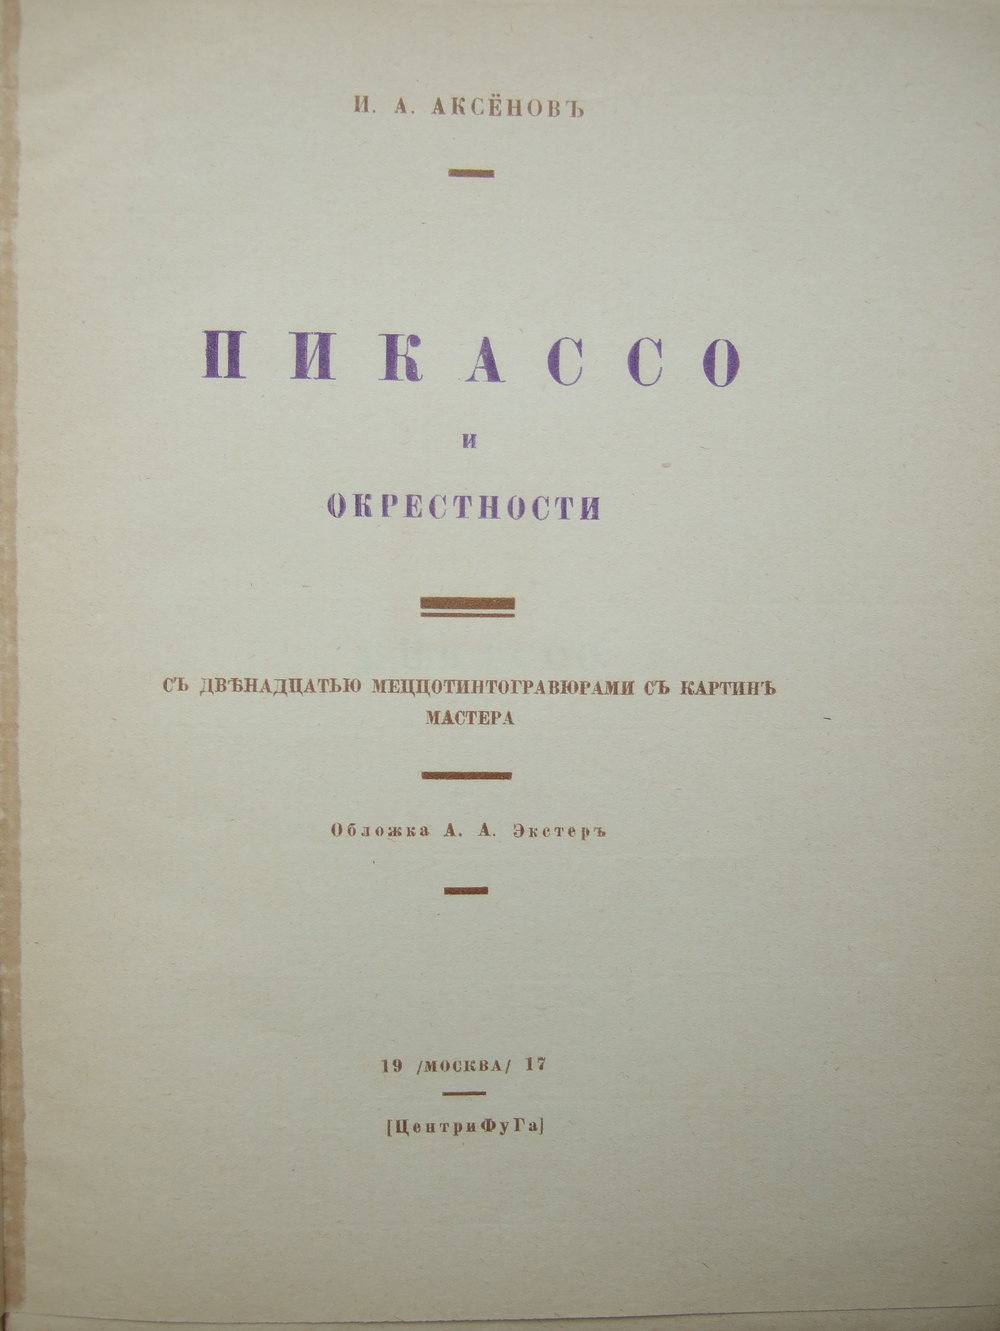 Title: Picasso i okrestnosti. Book by I.A. Aksenov.